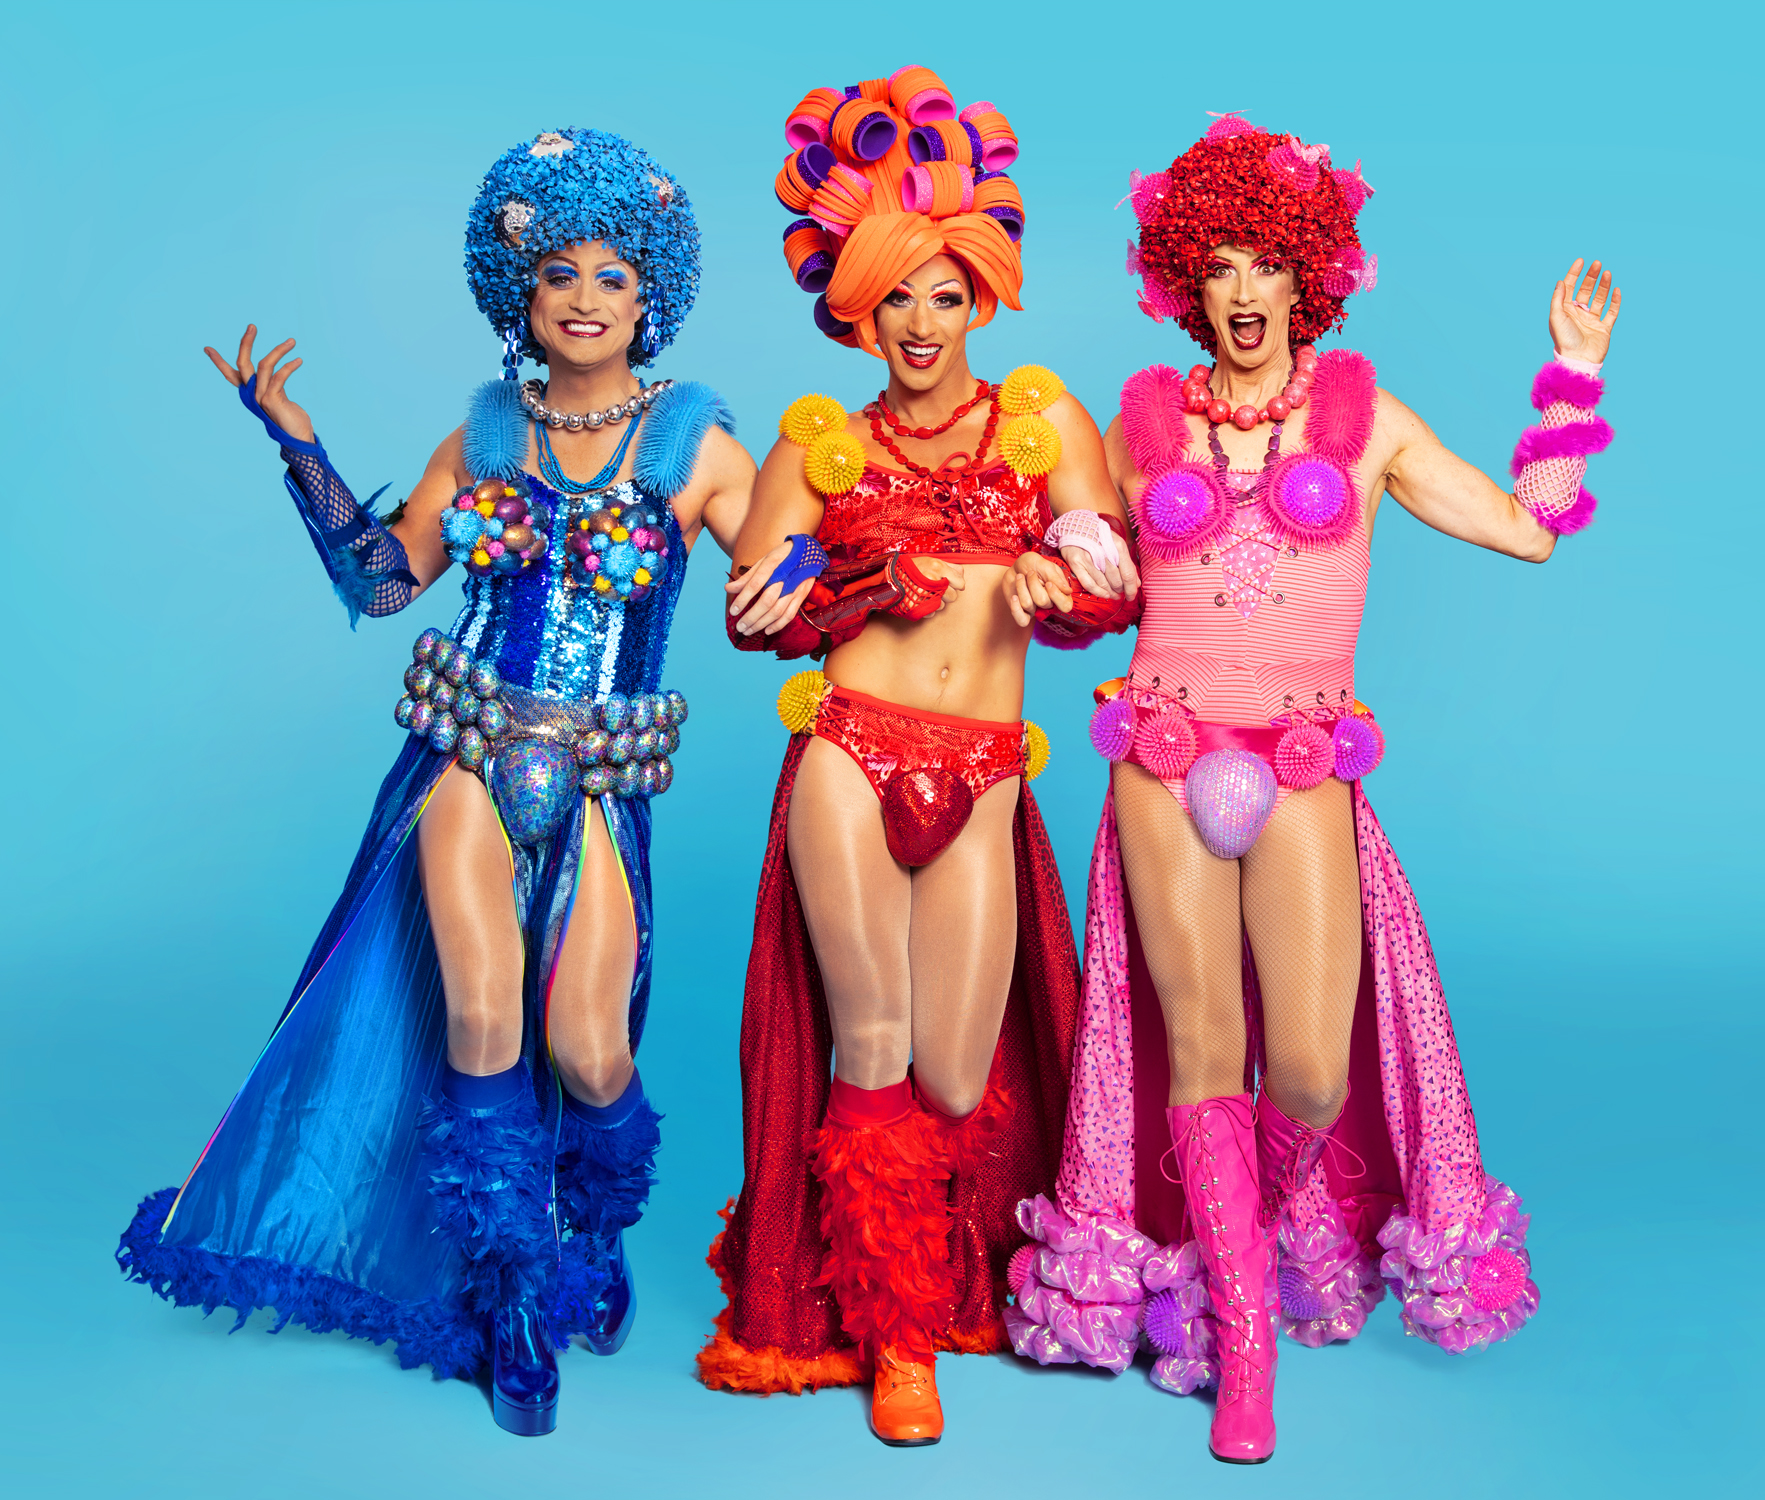 """Priscilla Queen of the Desert matinee cancelled due to """"unforeseen problems"""""""